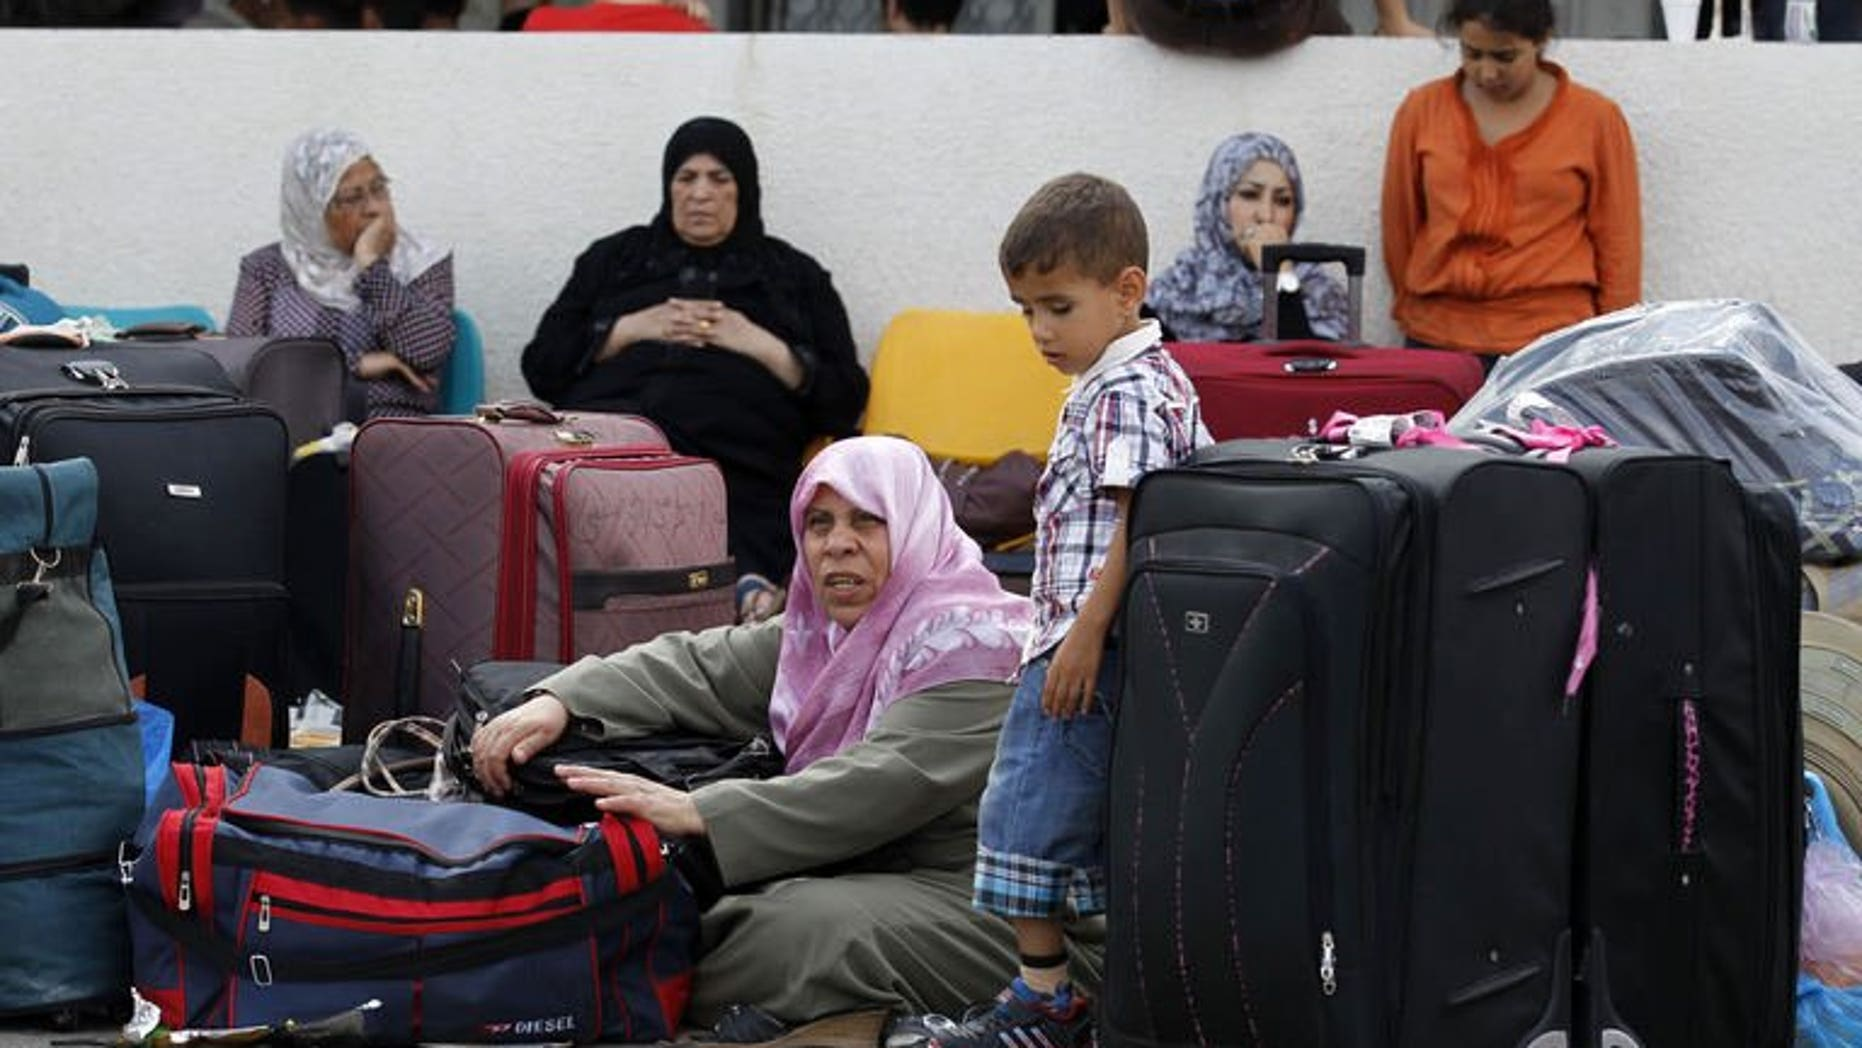 Palestinians wait at the Rafah border terminal in the southern Gaza Strip before crossing into neighbouring Egypt on August 24, 2013.